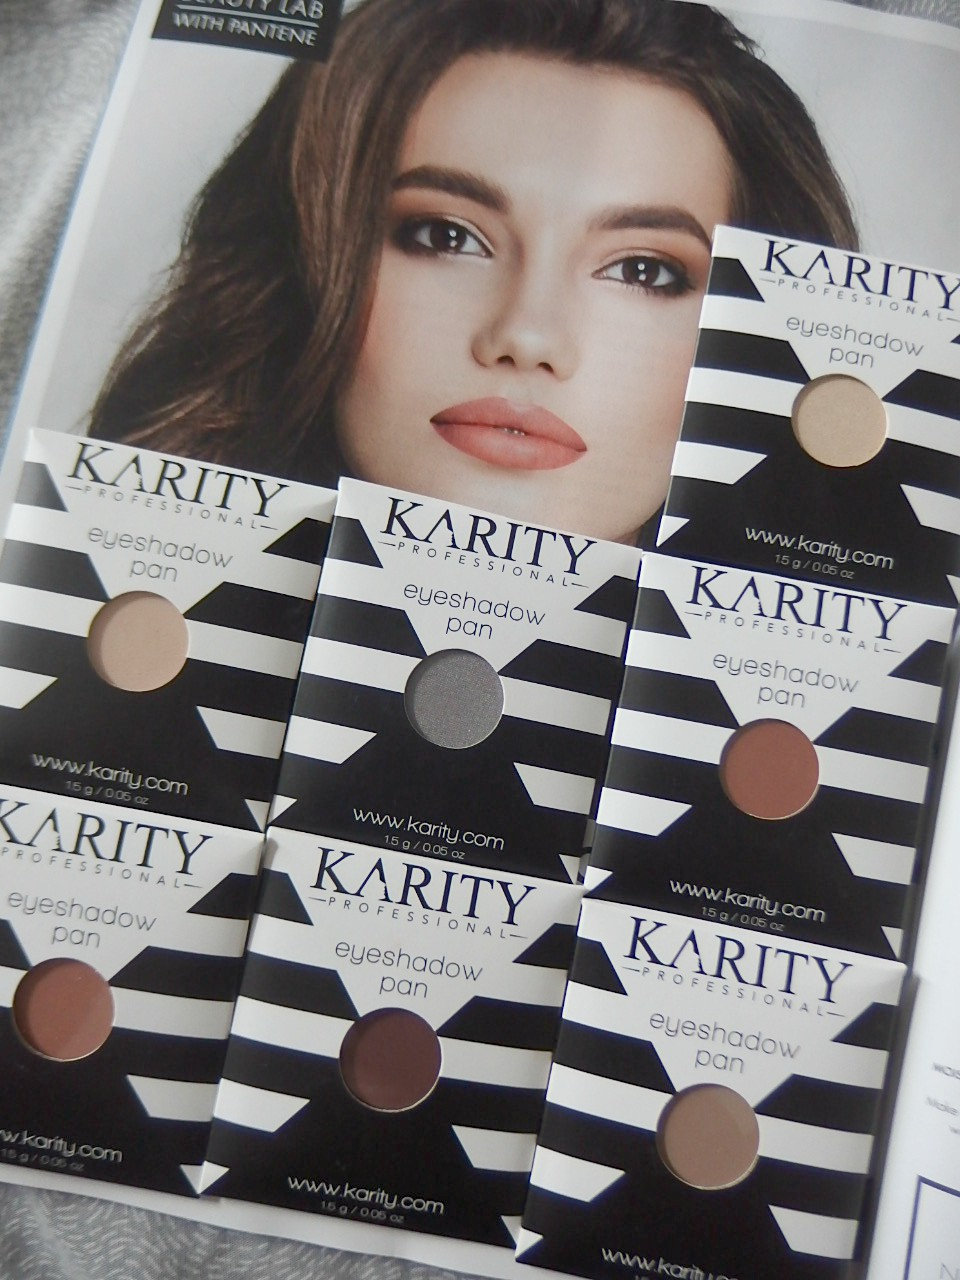 #Karity Eyeshadow Pan